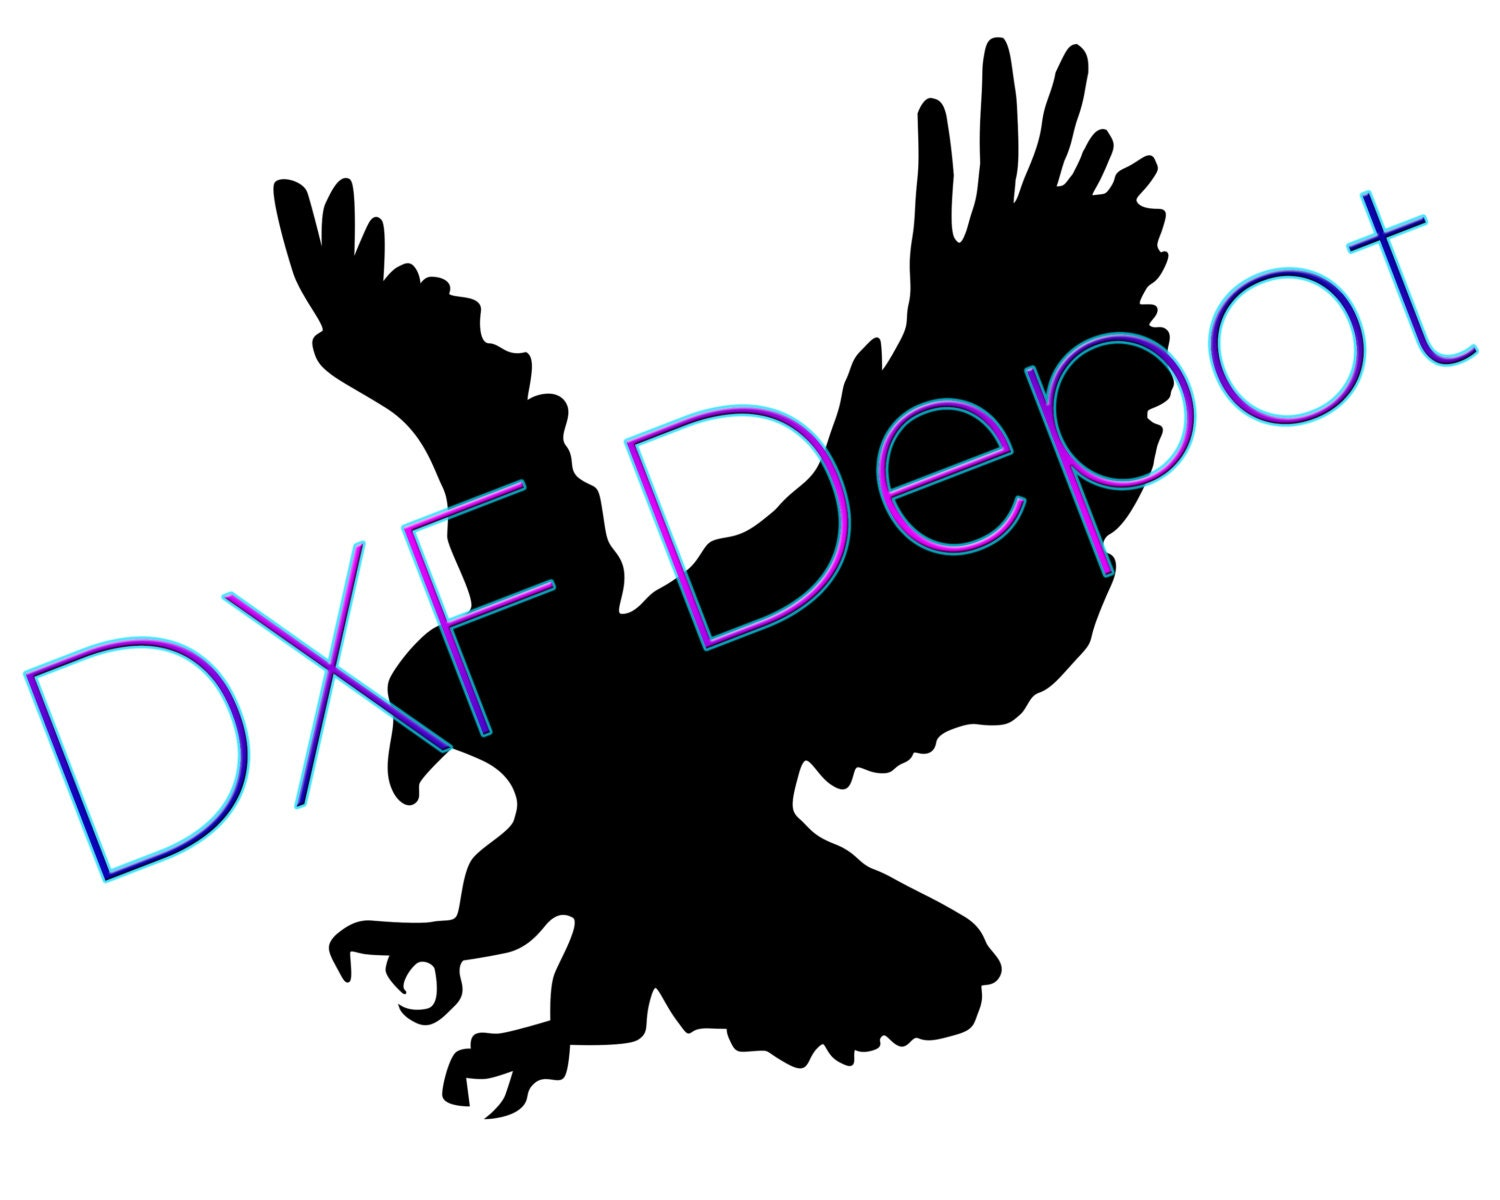 Eagle dxf format cnc cutting file vector art dxf by dxfdepot